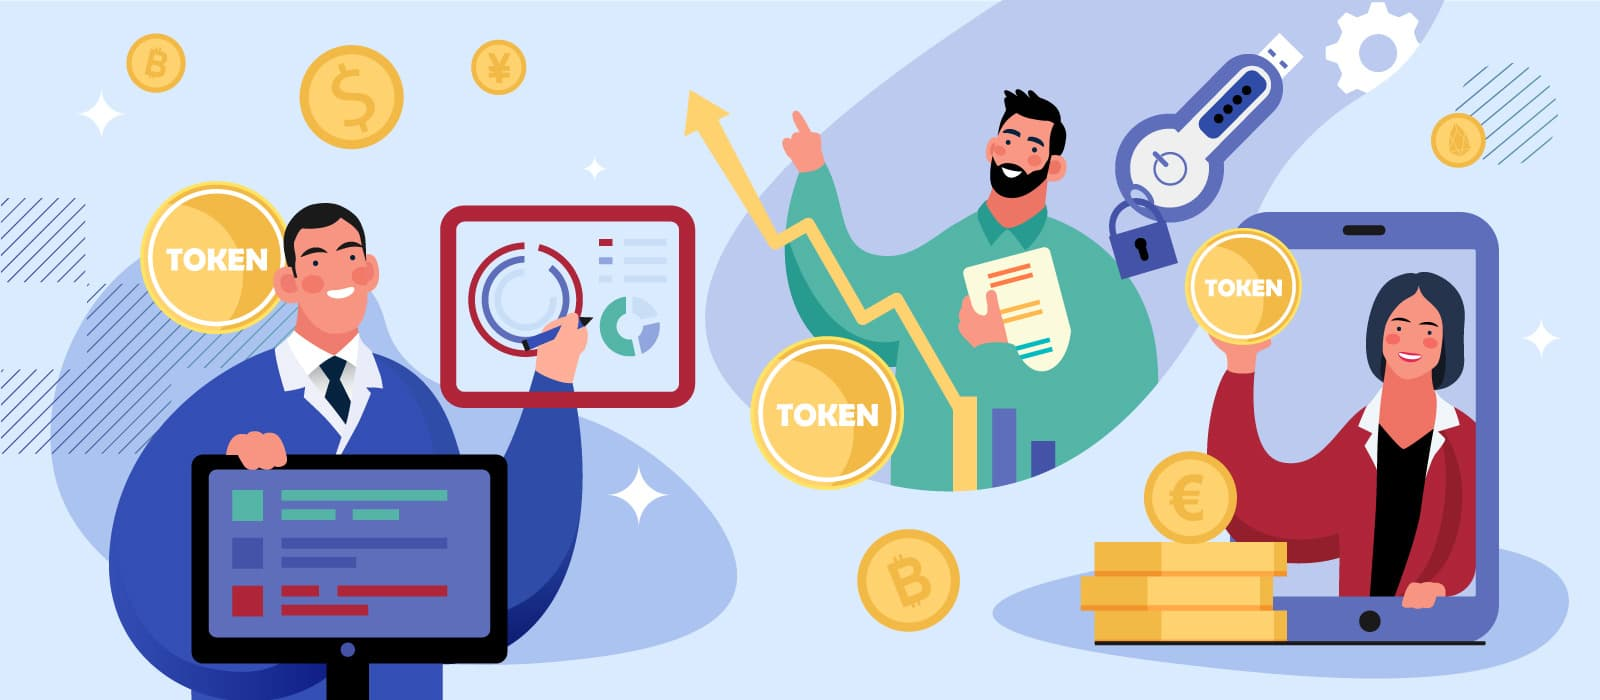 Asset Tokenization From A to Z: Explanation, Benefits, Limitations, and Real-Life Use Cases